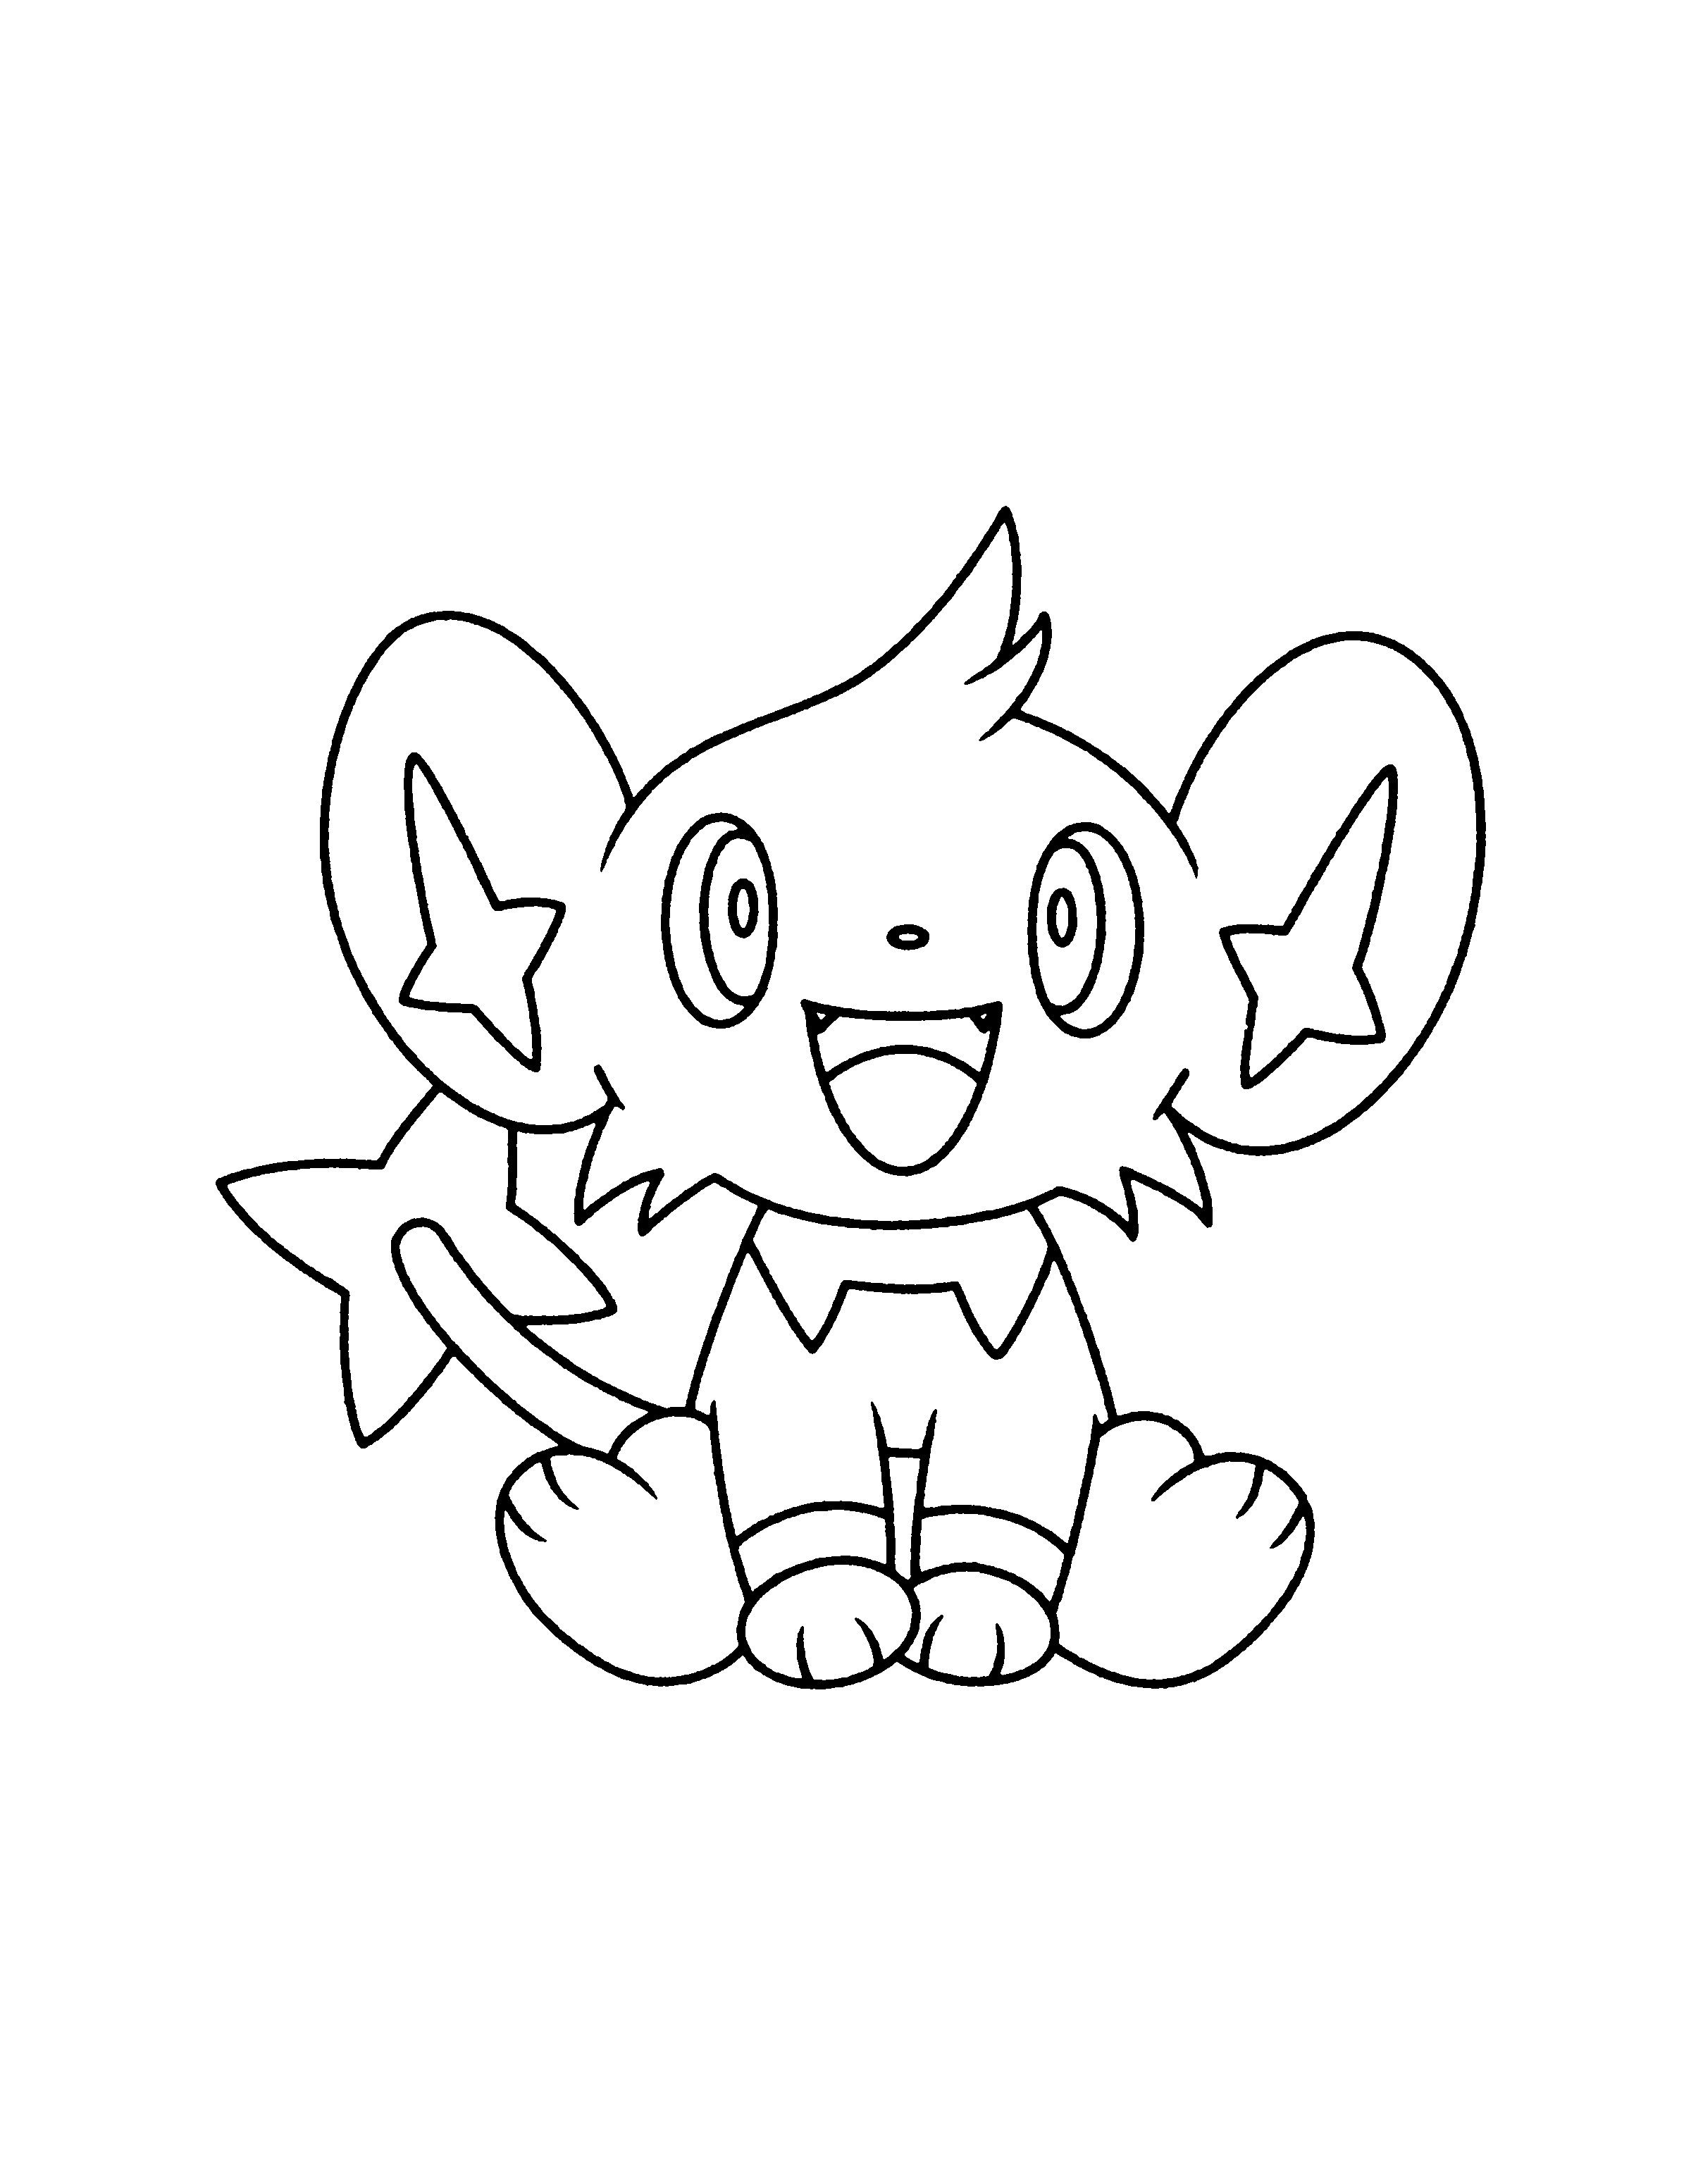 Pokemon Luxio Coloring Pages Pokemon Coloring Pages Pokemon